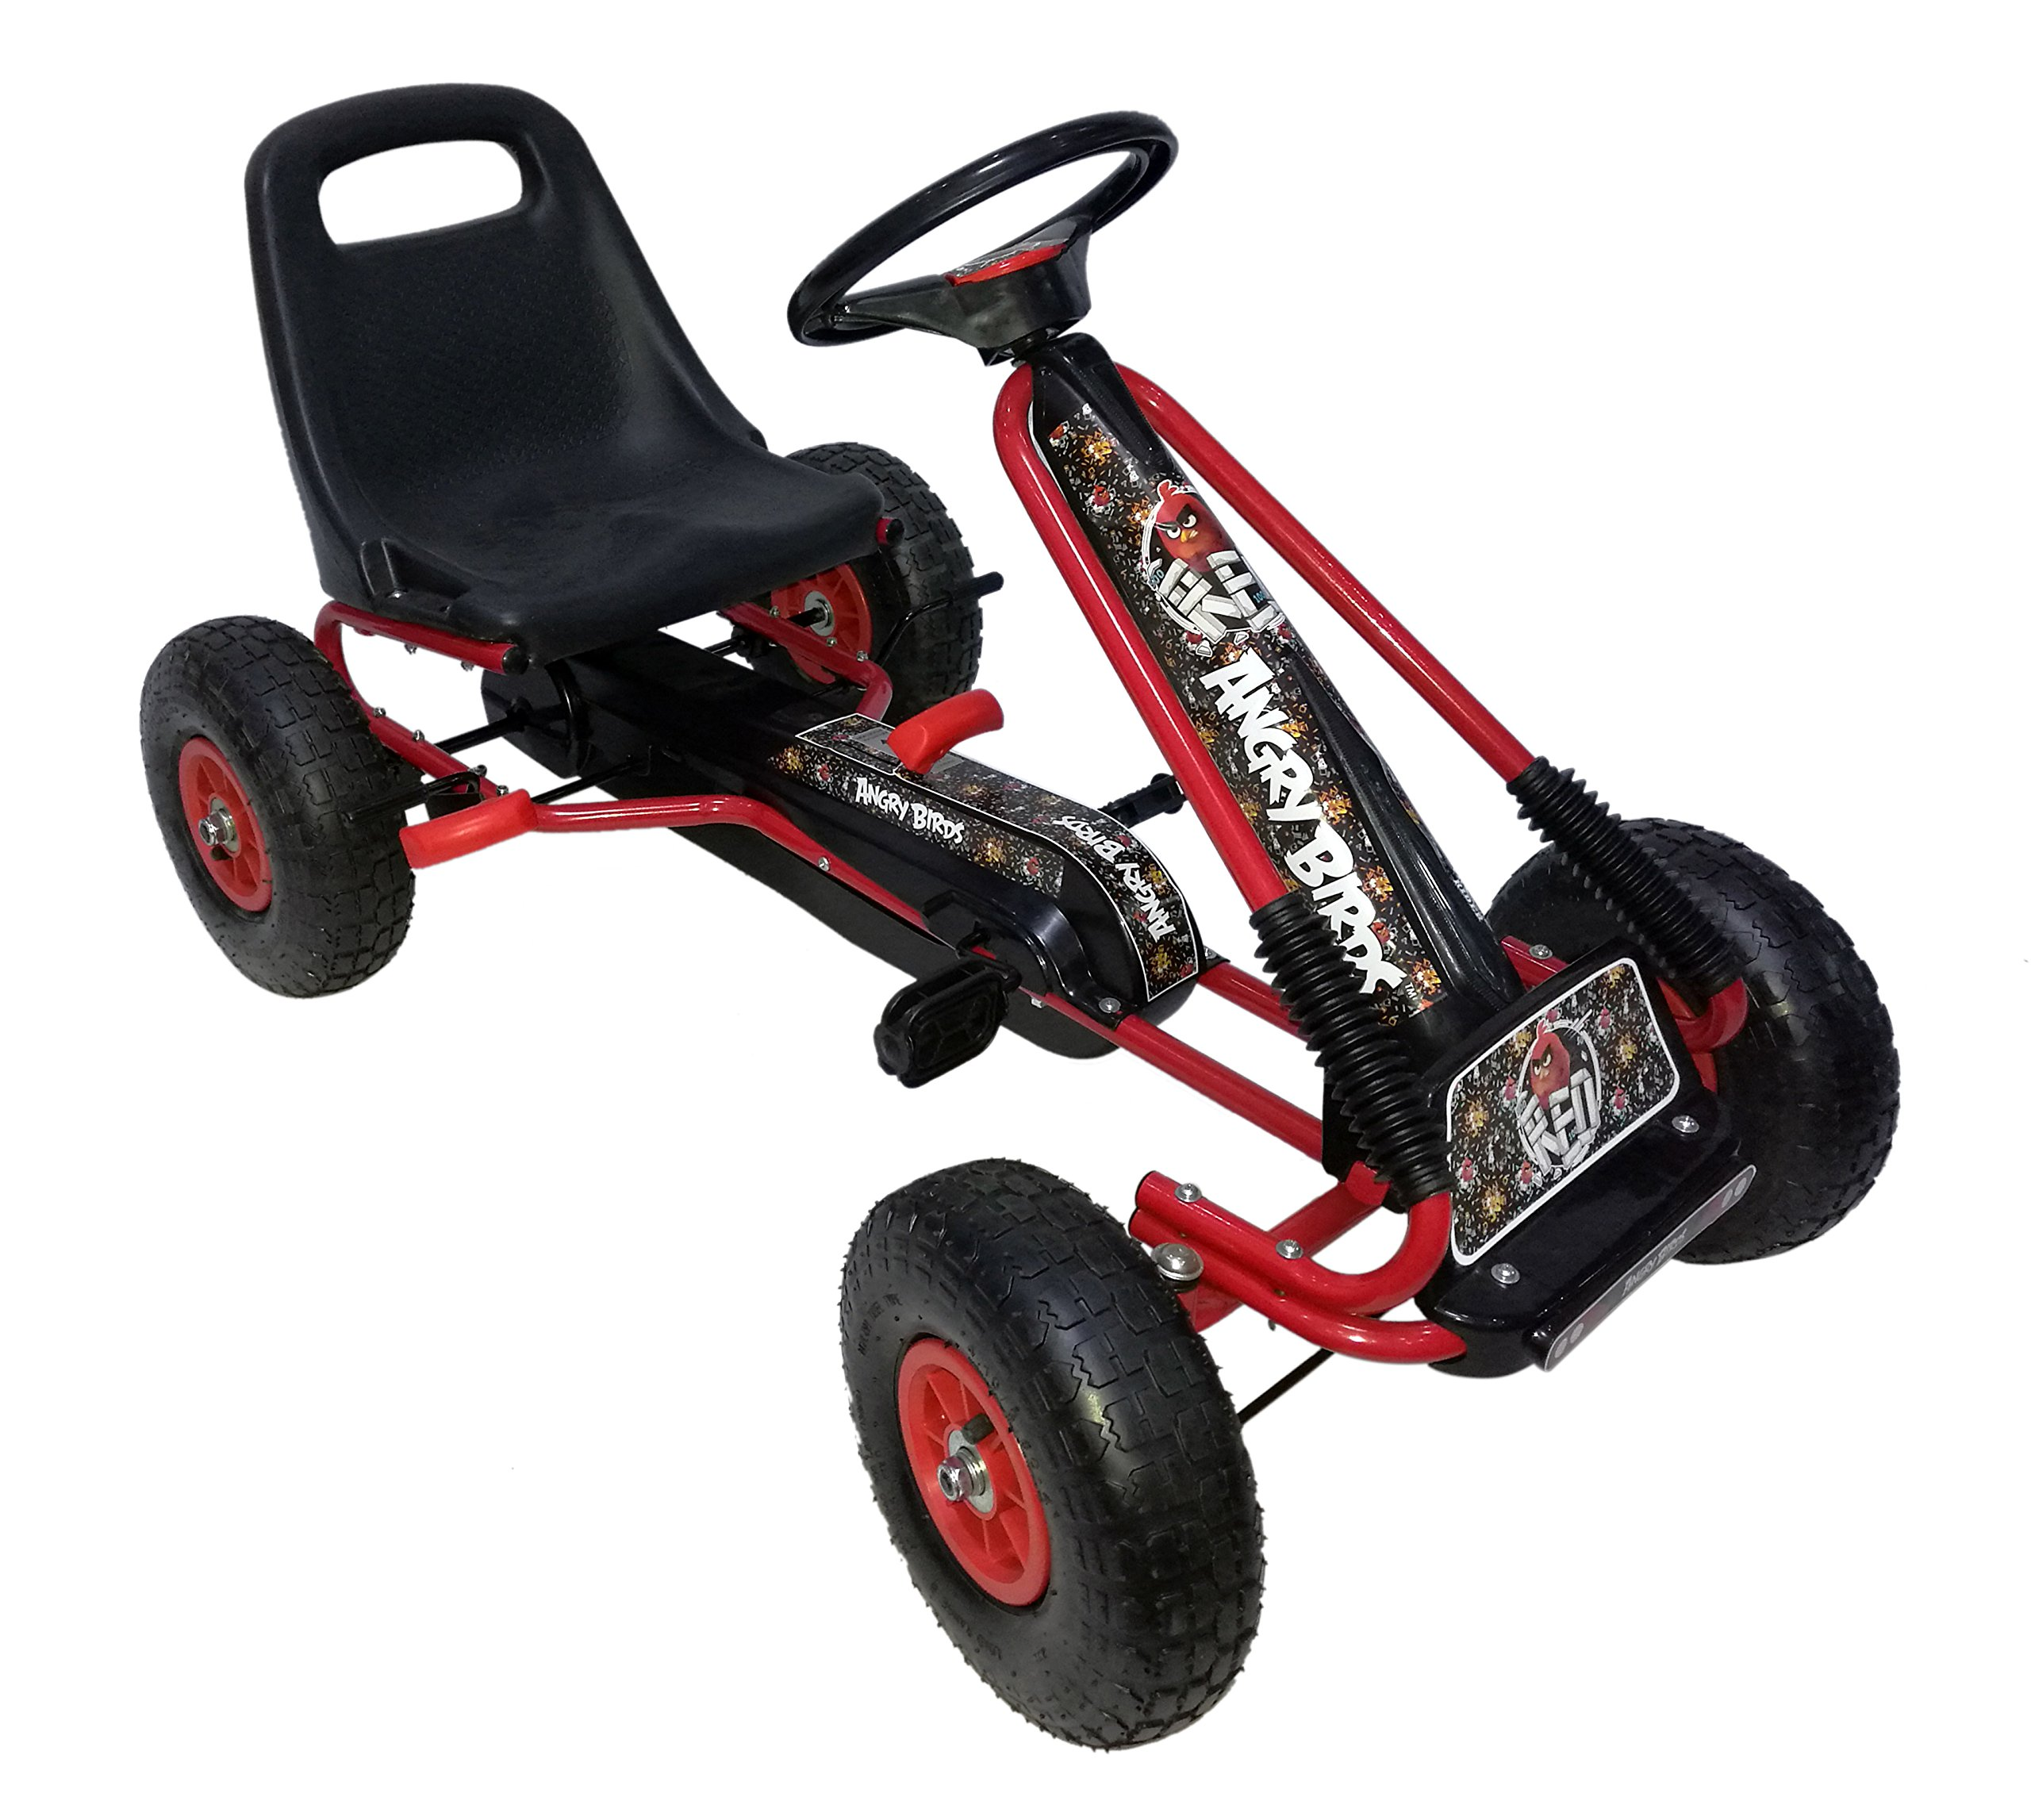 Angry Birds ''Red'' Racing Pedal Go-Kart w/ Pneumatic Tire - Black by Vroom Rider